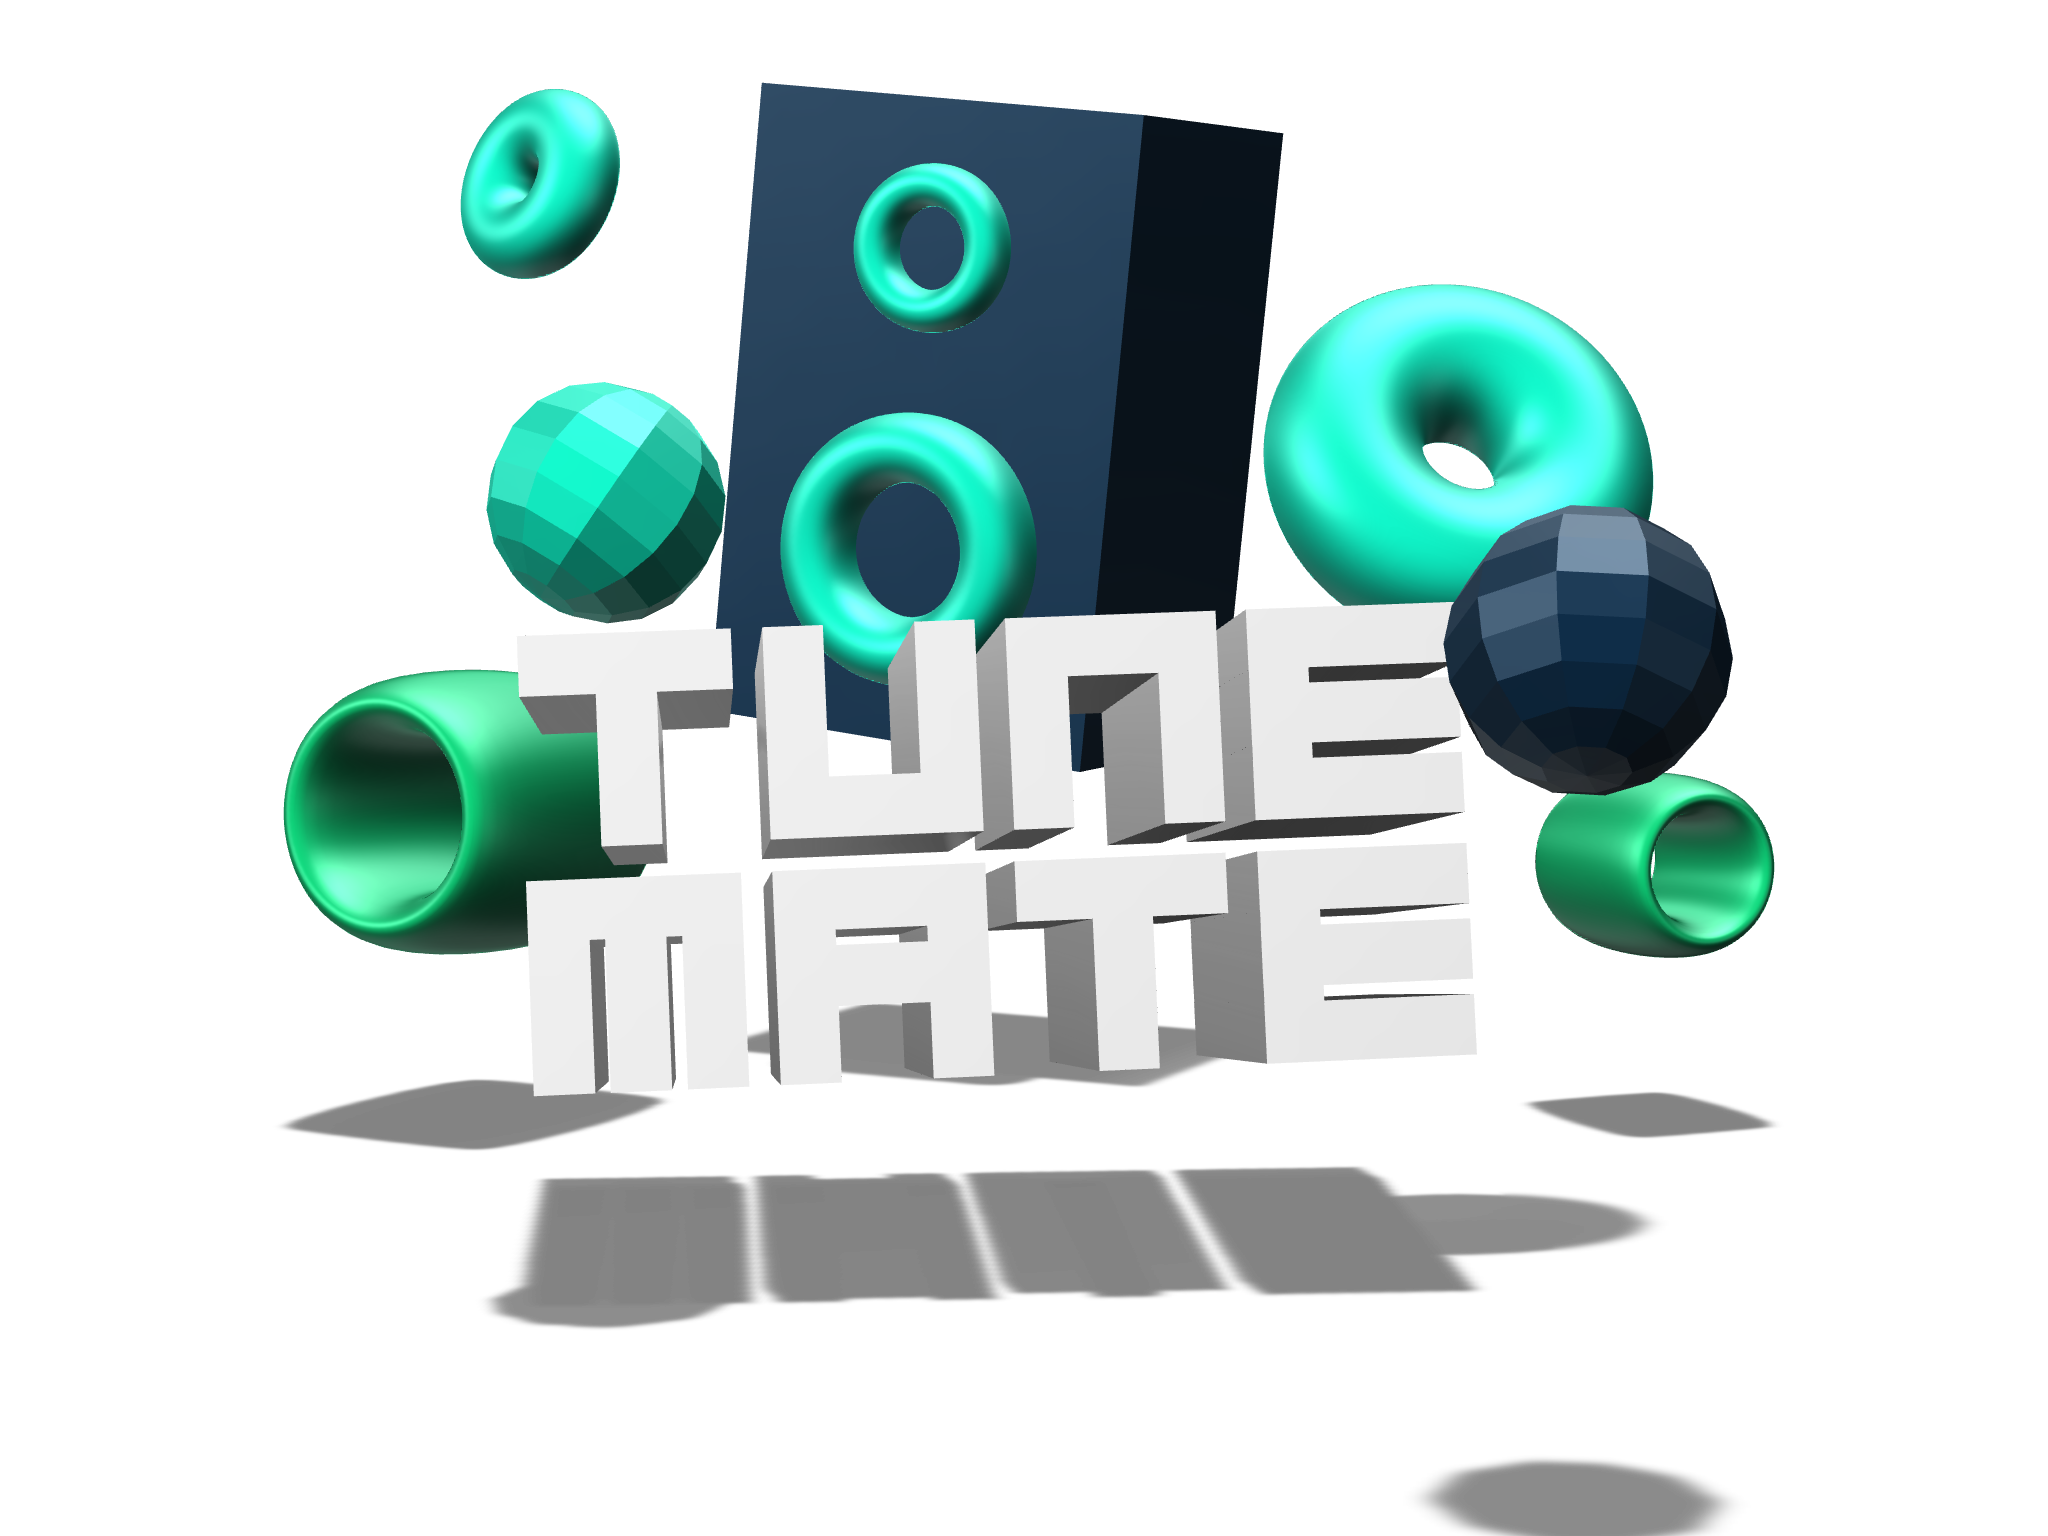 Tune - 3D design by kris.hart.design Mar 16, 2018